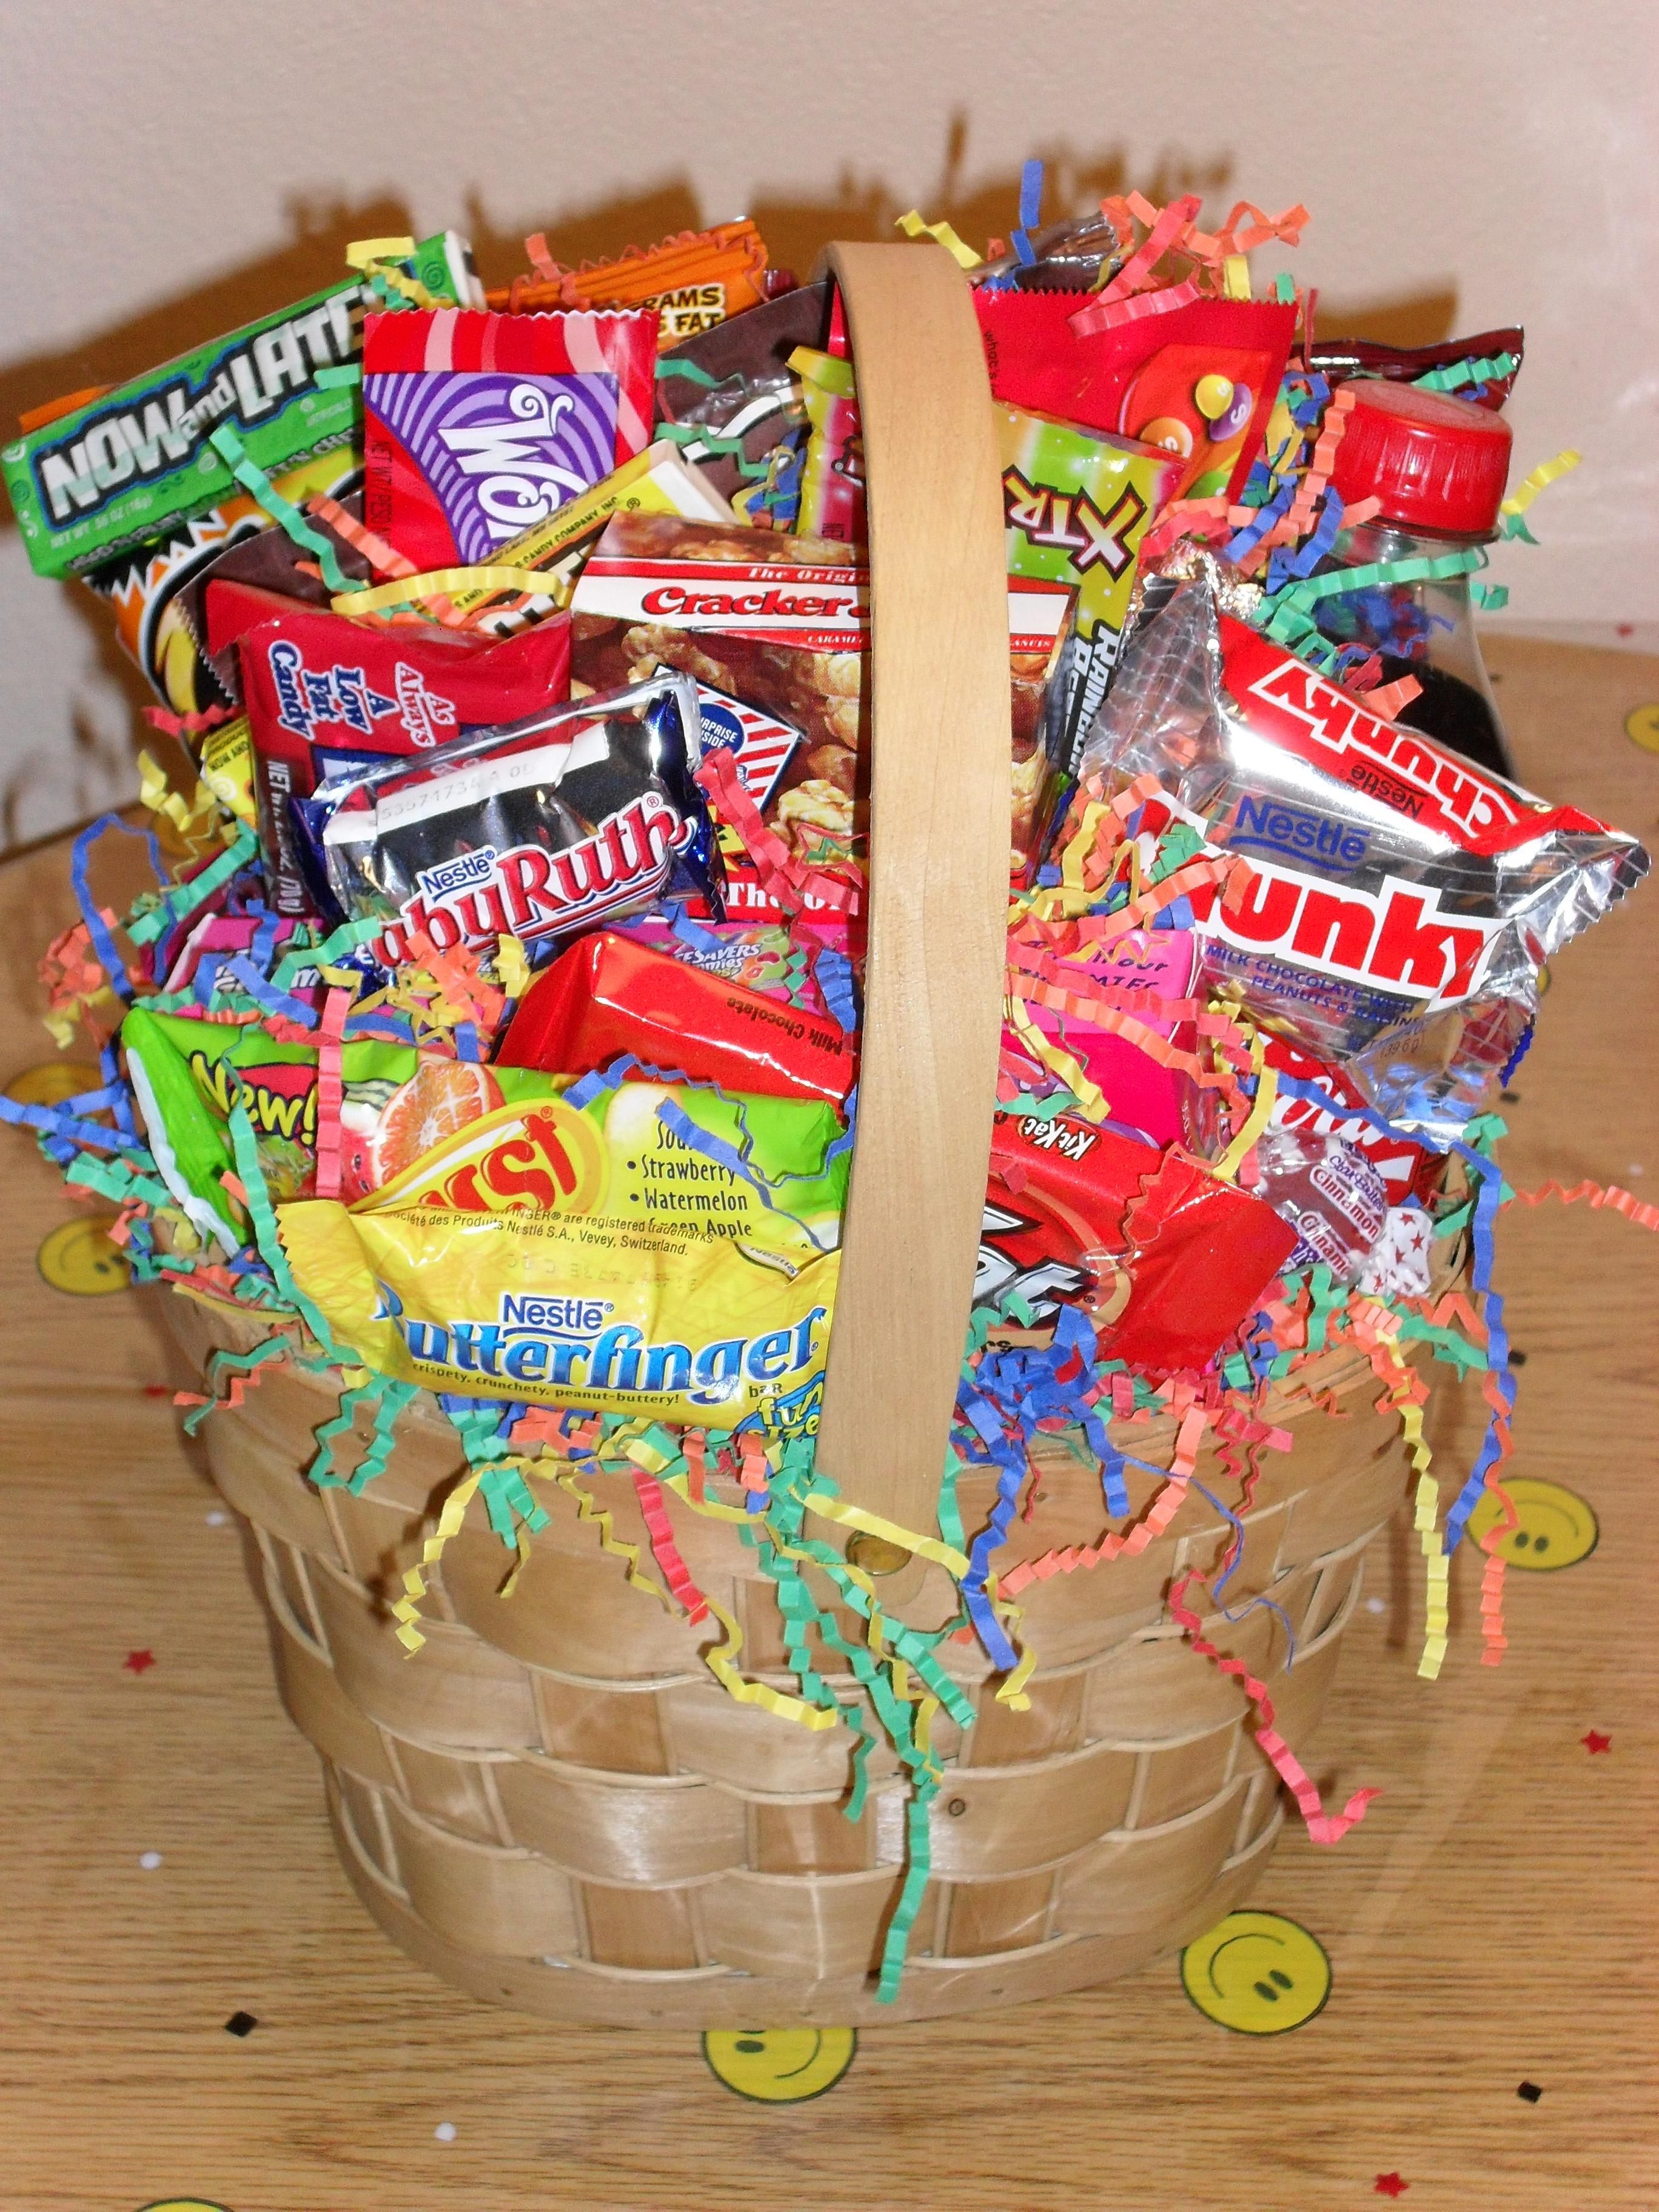 98c21ee58c51e This snack basket arrived just in time to let him know she was sorry medium  basket  60.